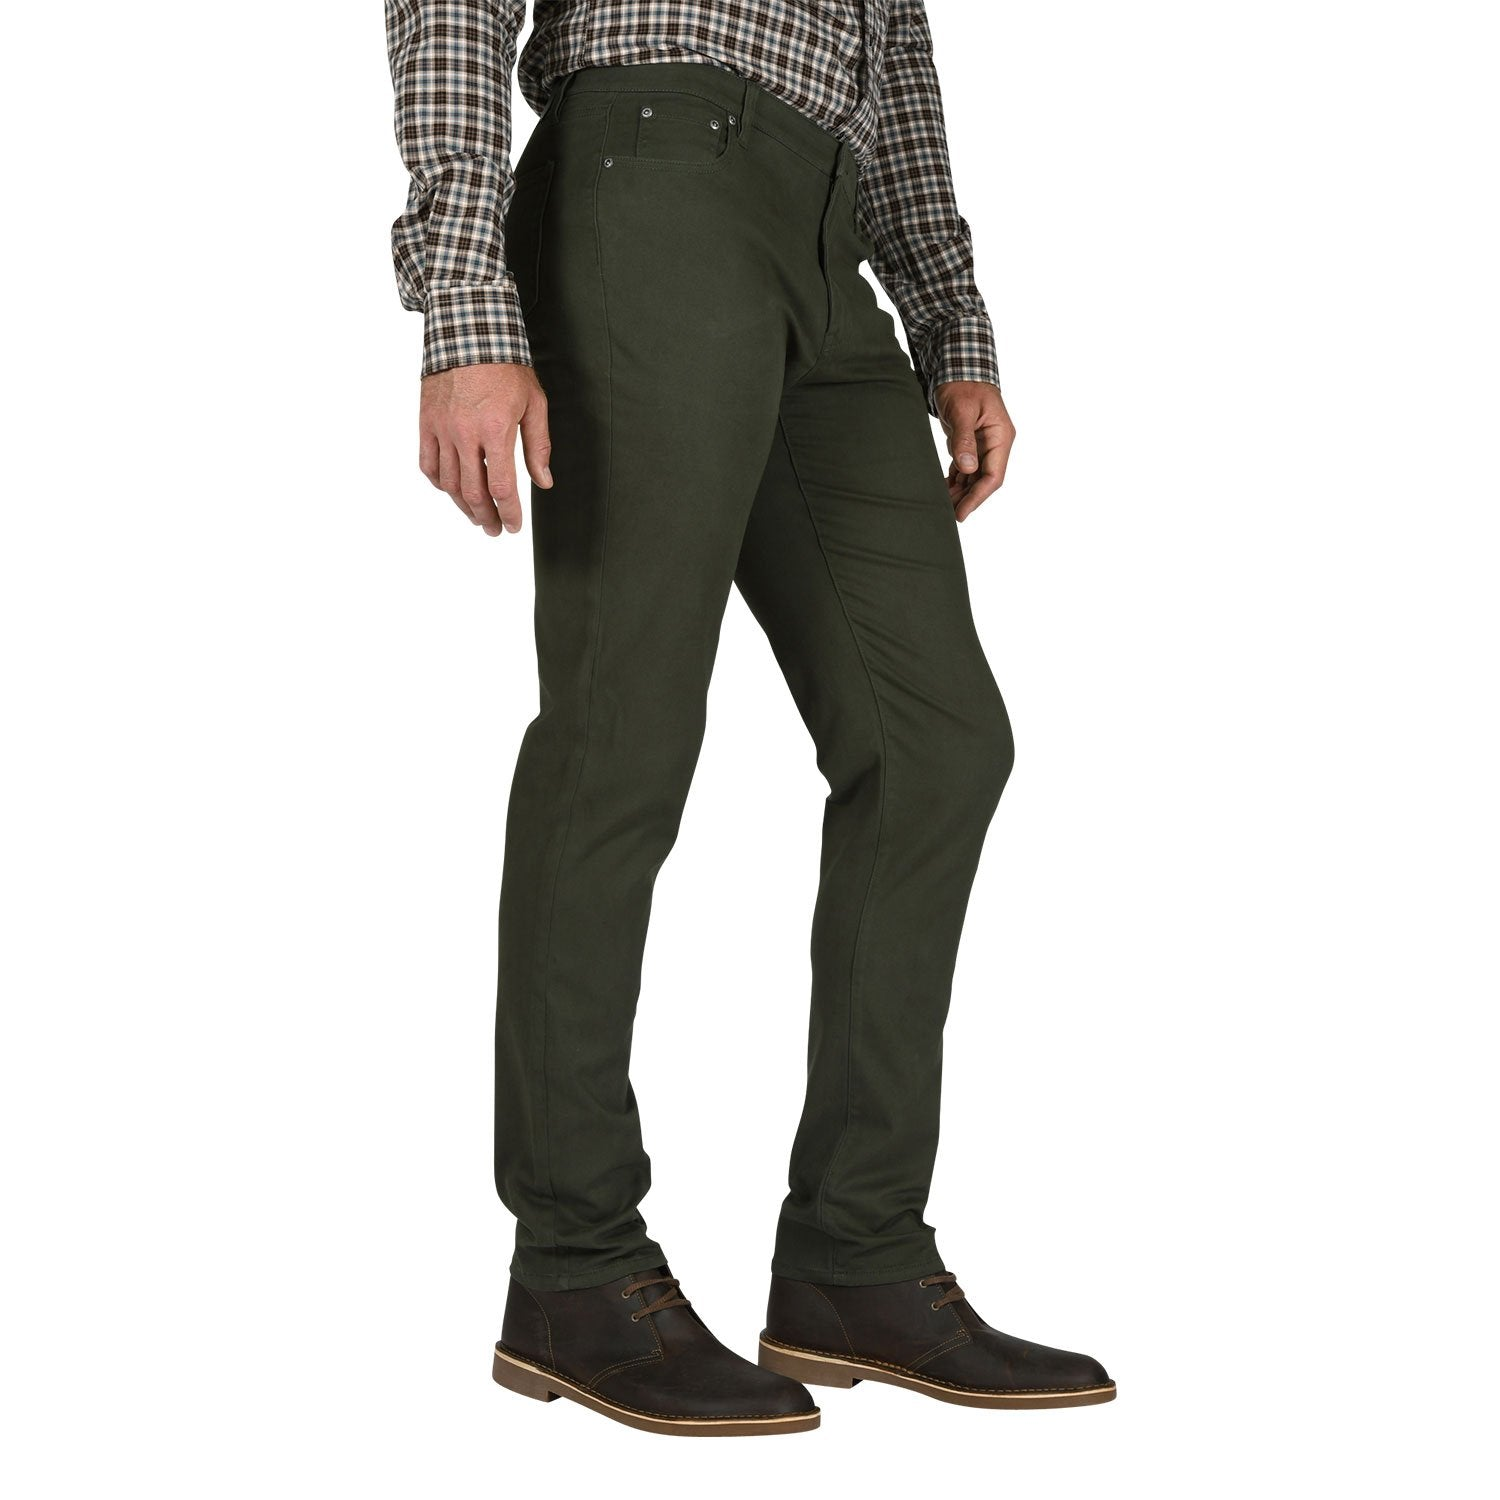 Carman TAPERED FIT Mens Tall Pants in Loden Green fb1a03e3cedcb